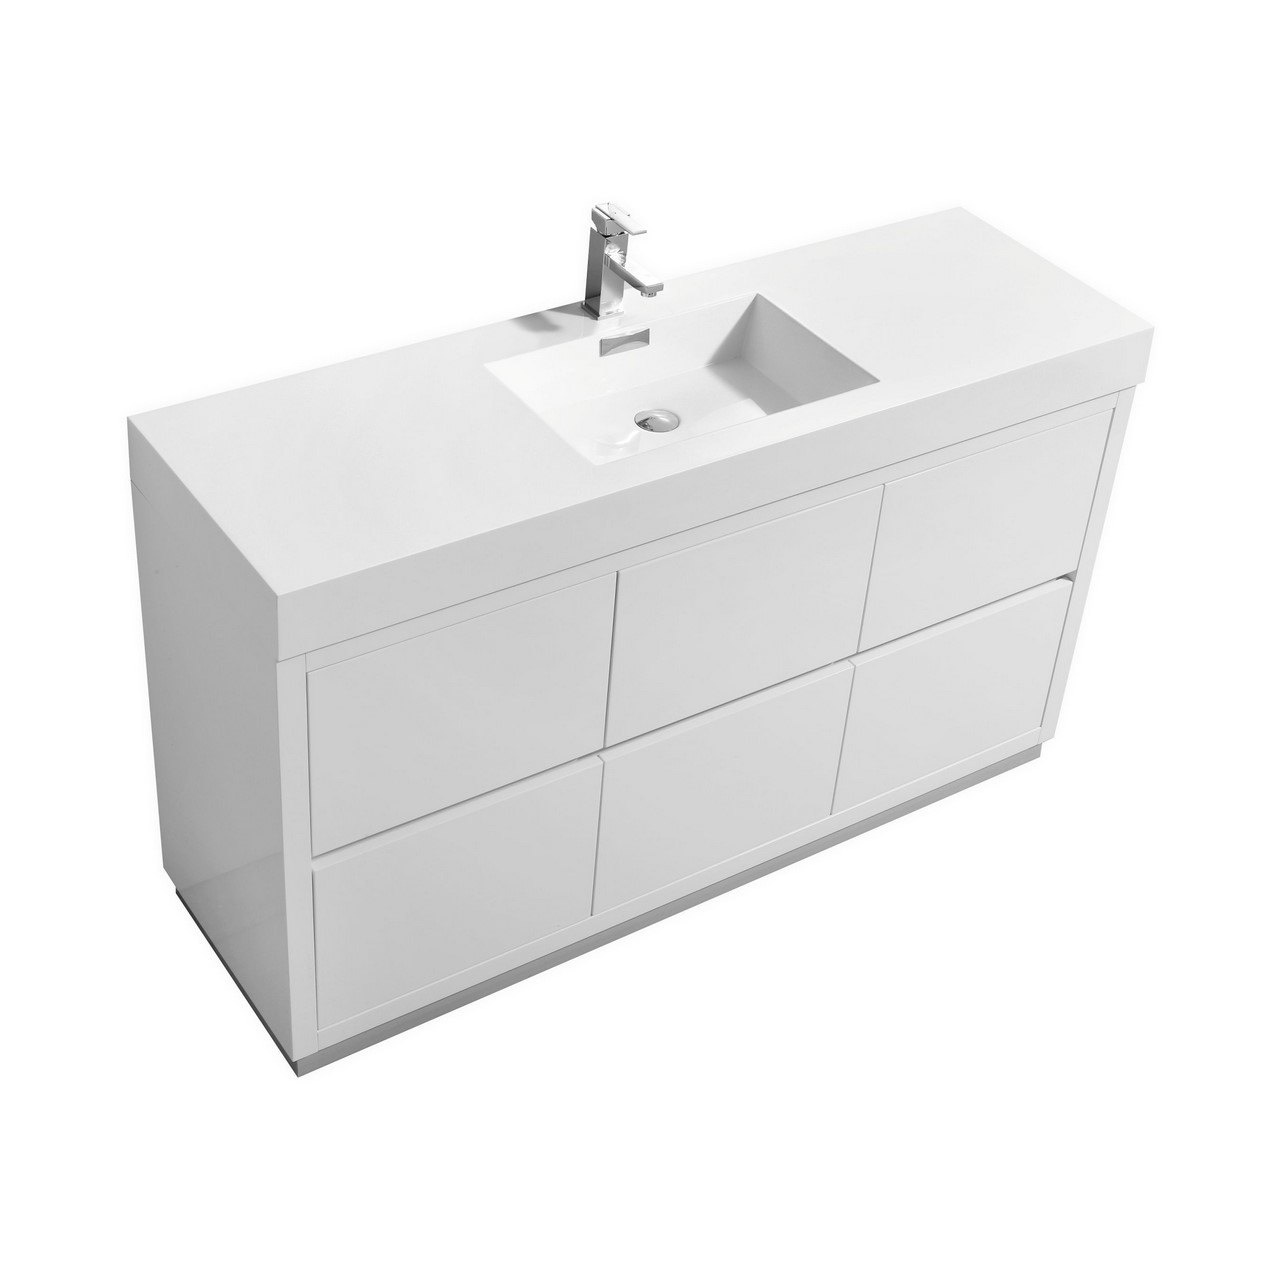 Bathroom vanities 60 single